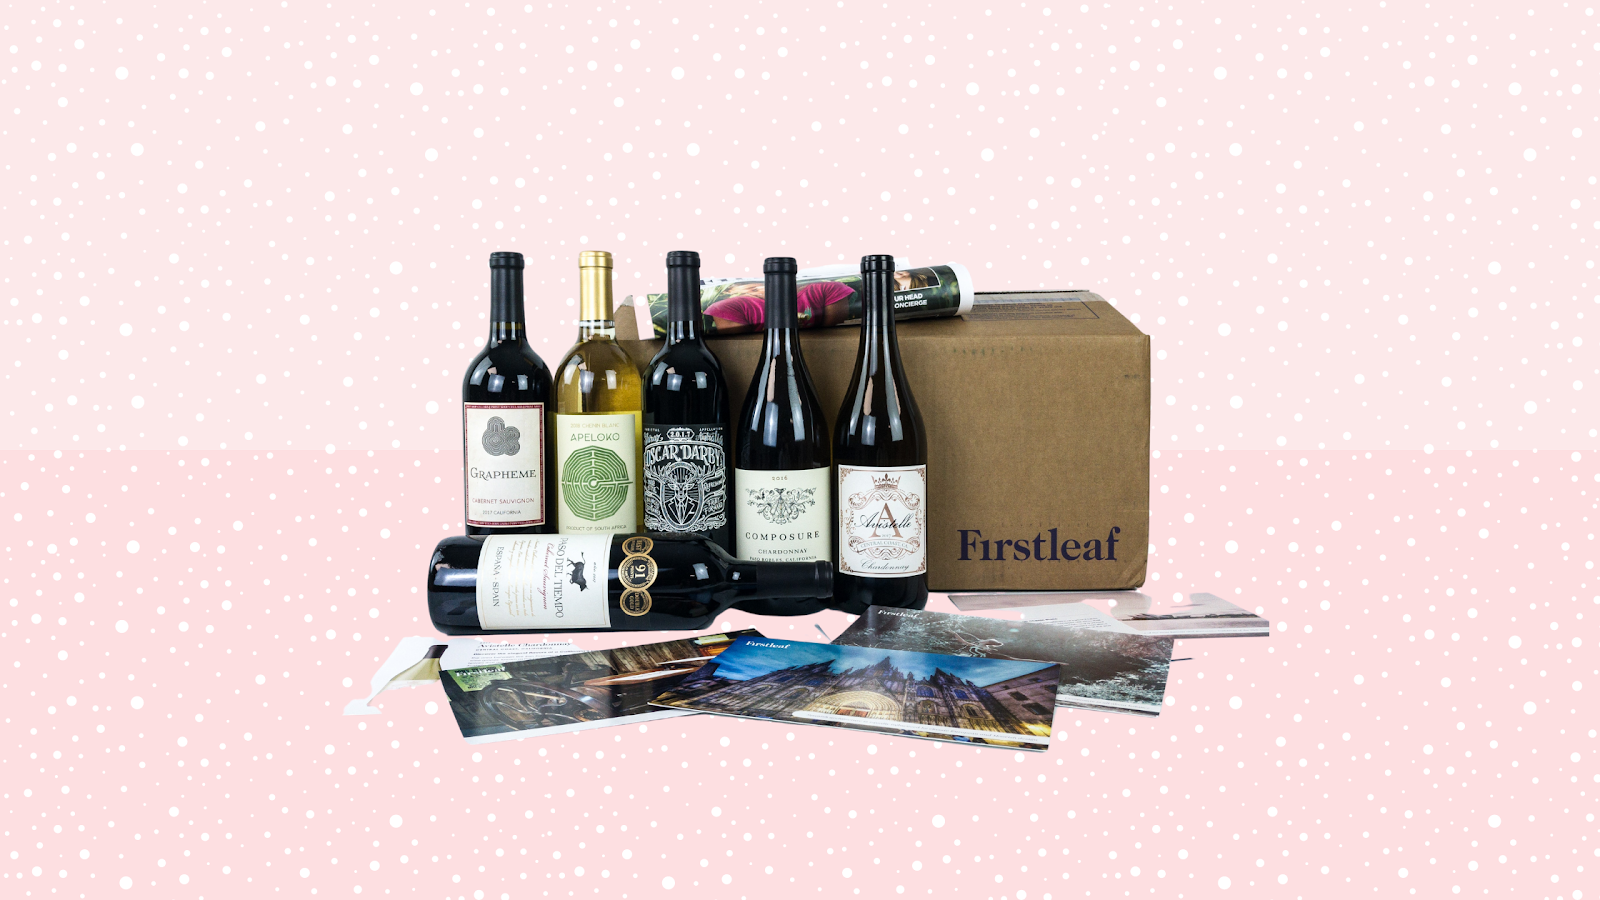 Last-minute Christmas gifts to send from Firstleaf